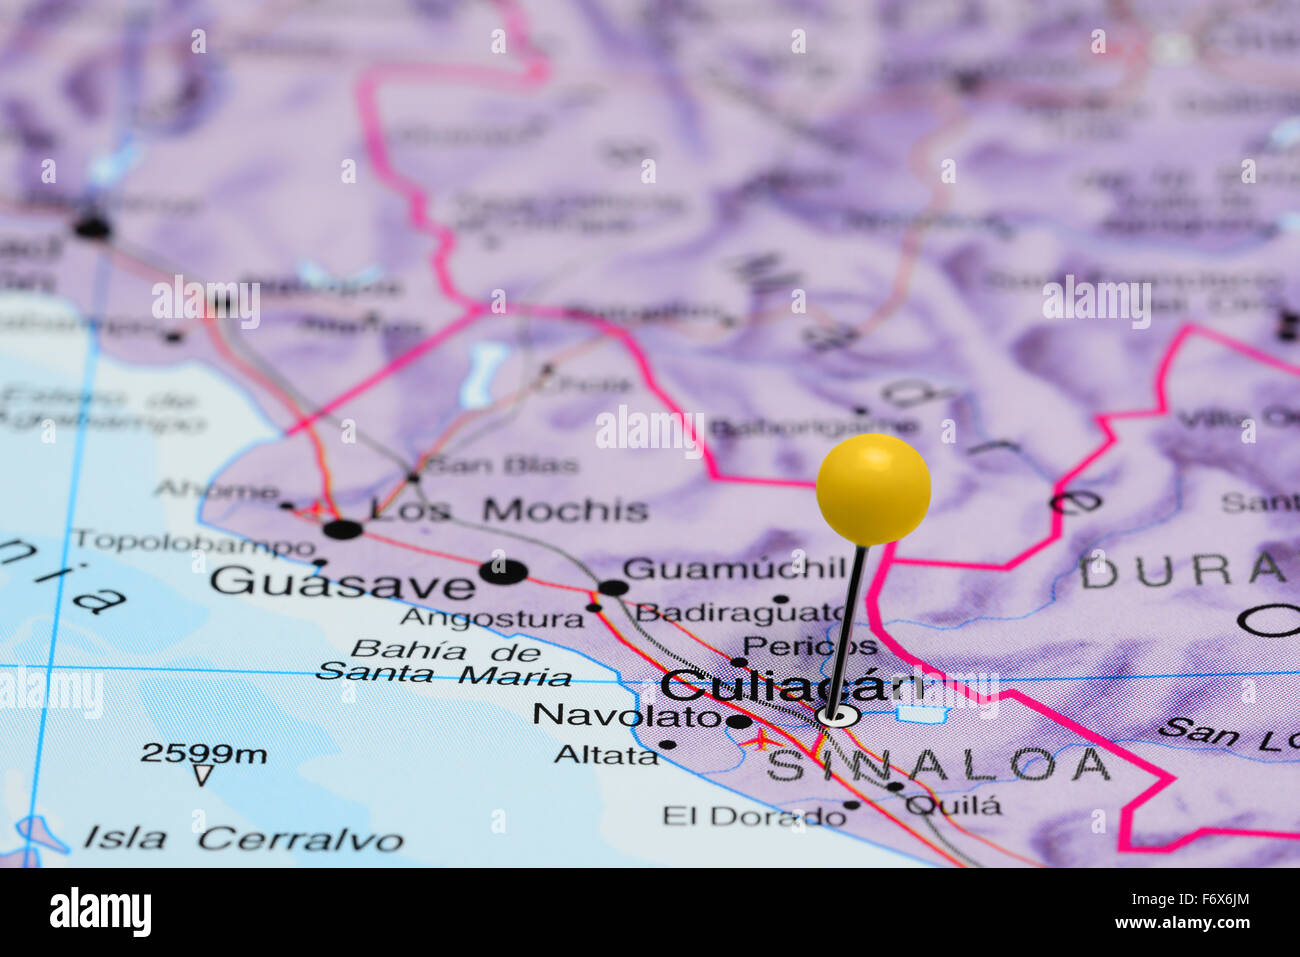 Culiacan Sinaloa Mexico Map.Sinaloa Map Stock Photos Sinaloa Map Stock Images Alamy